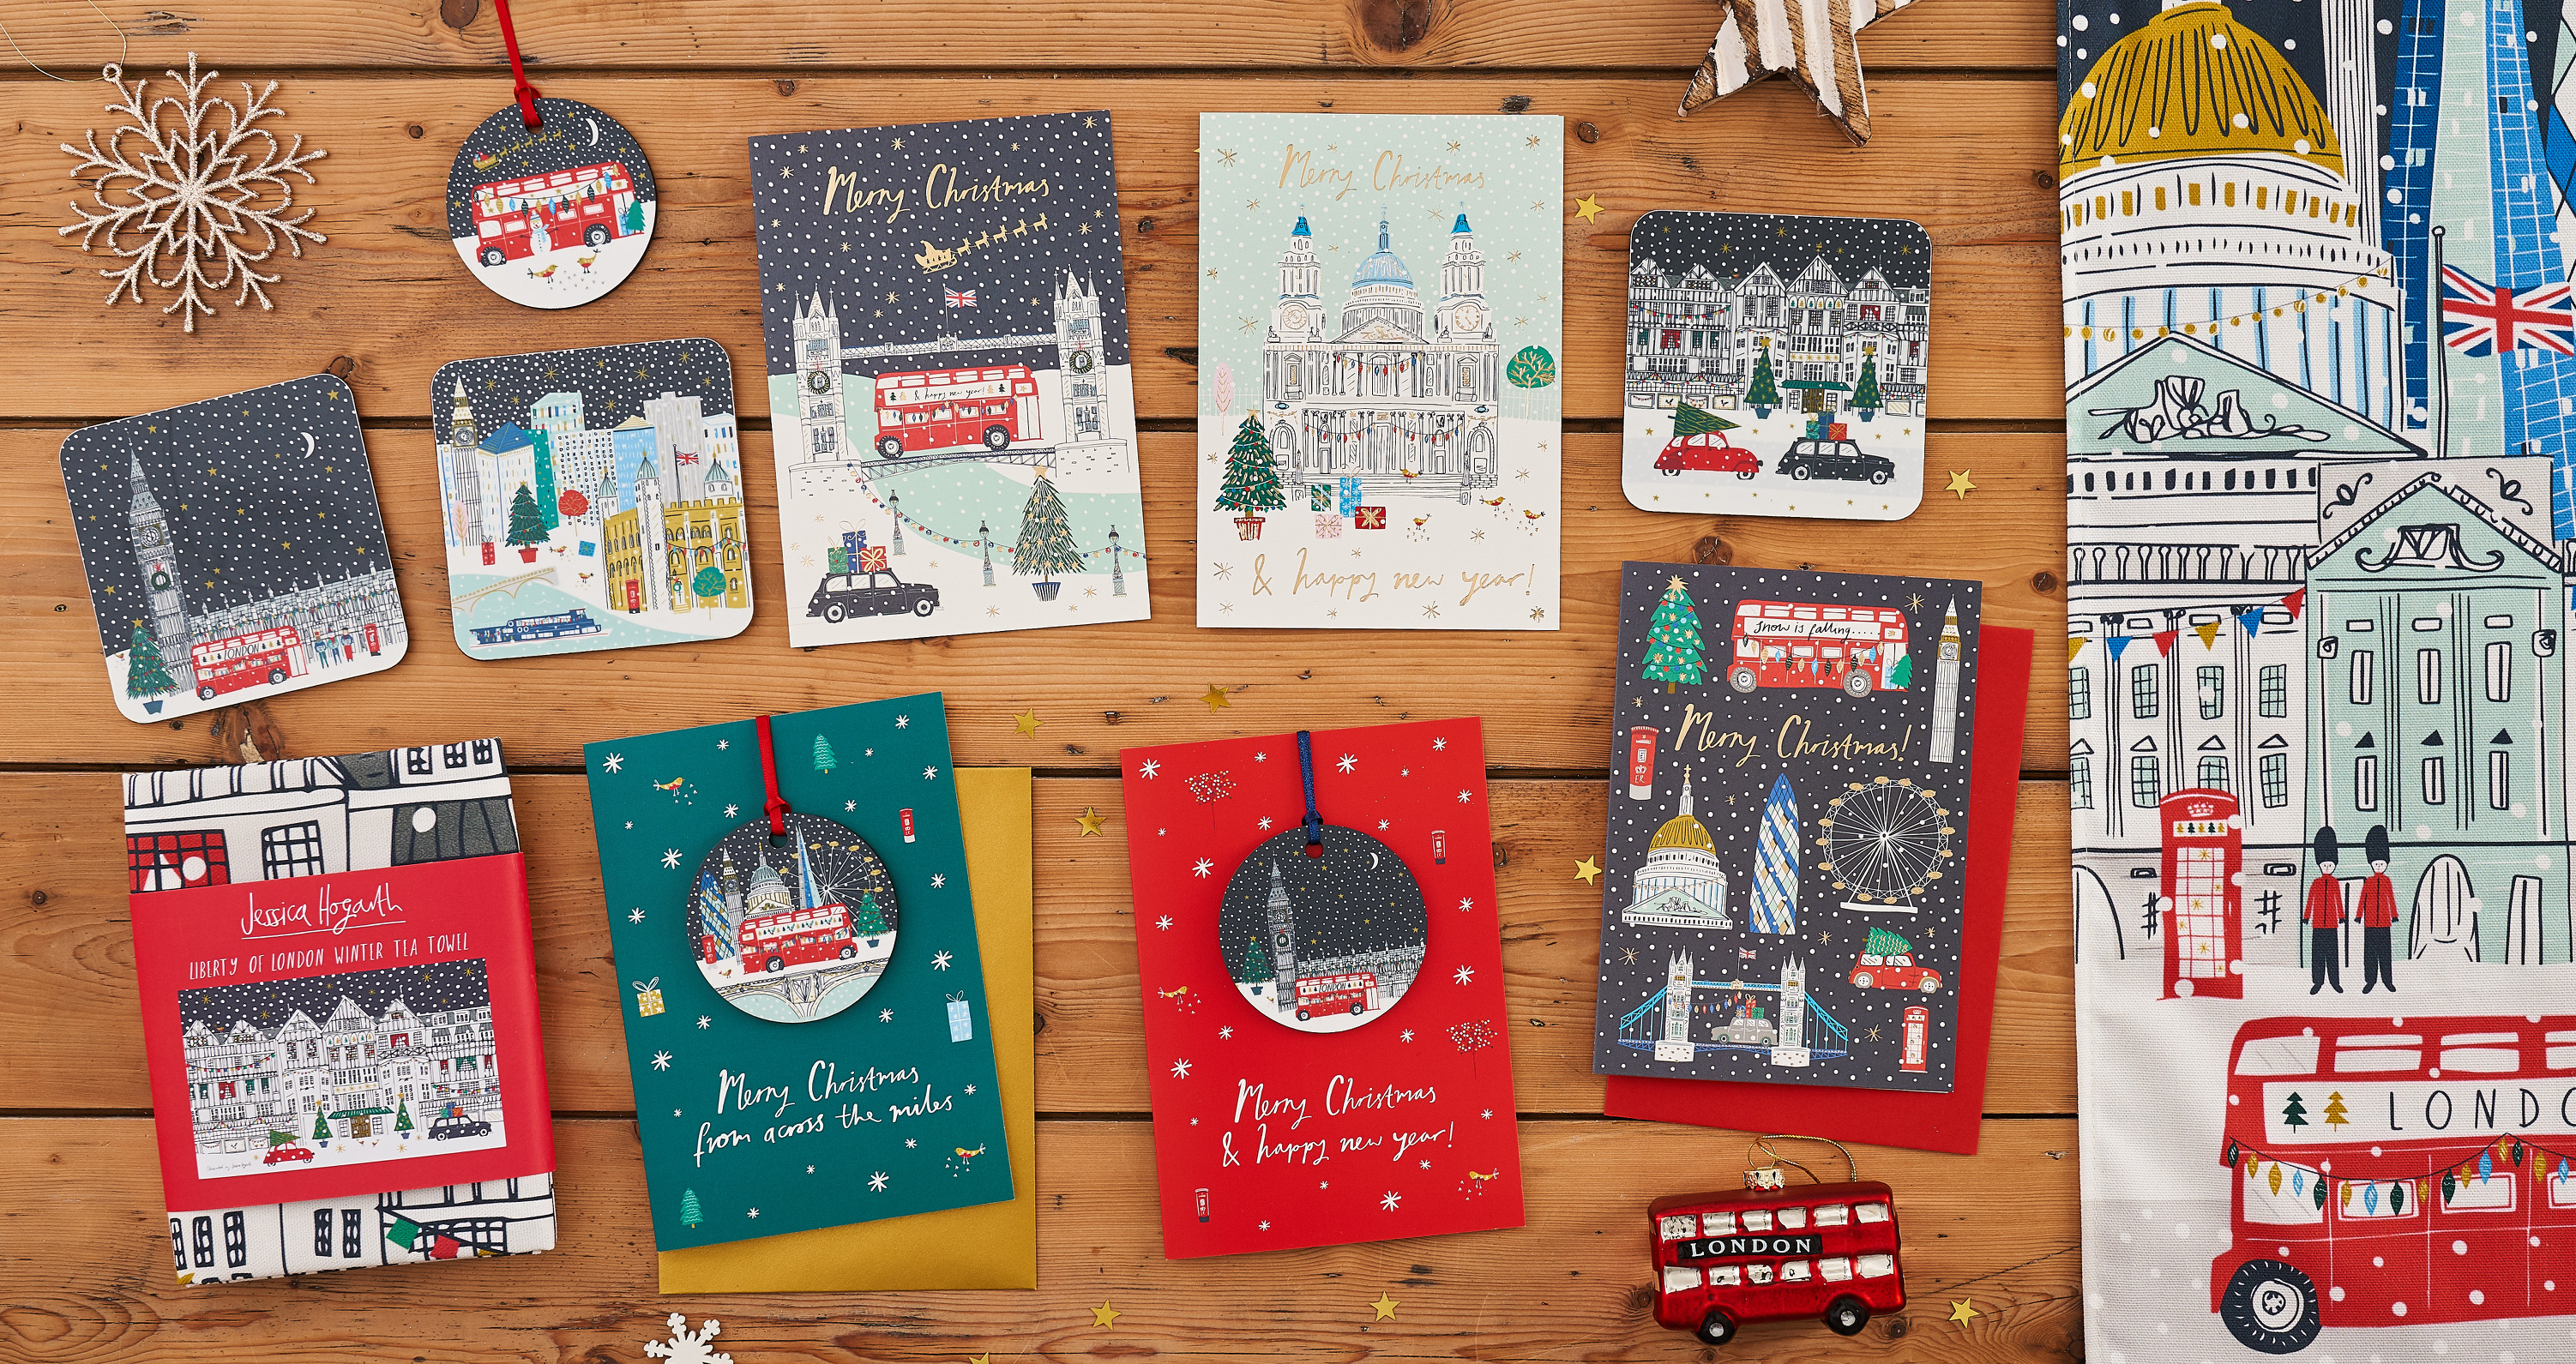 Above: Some of the Christmas collection from Jessica Hogarth.